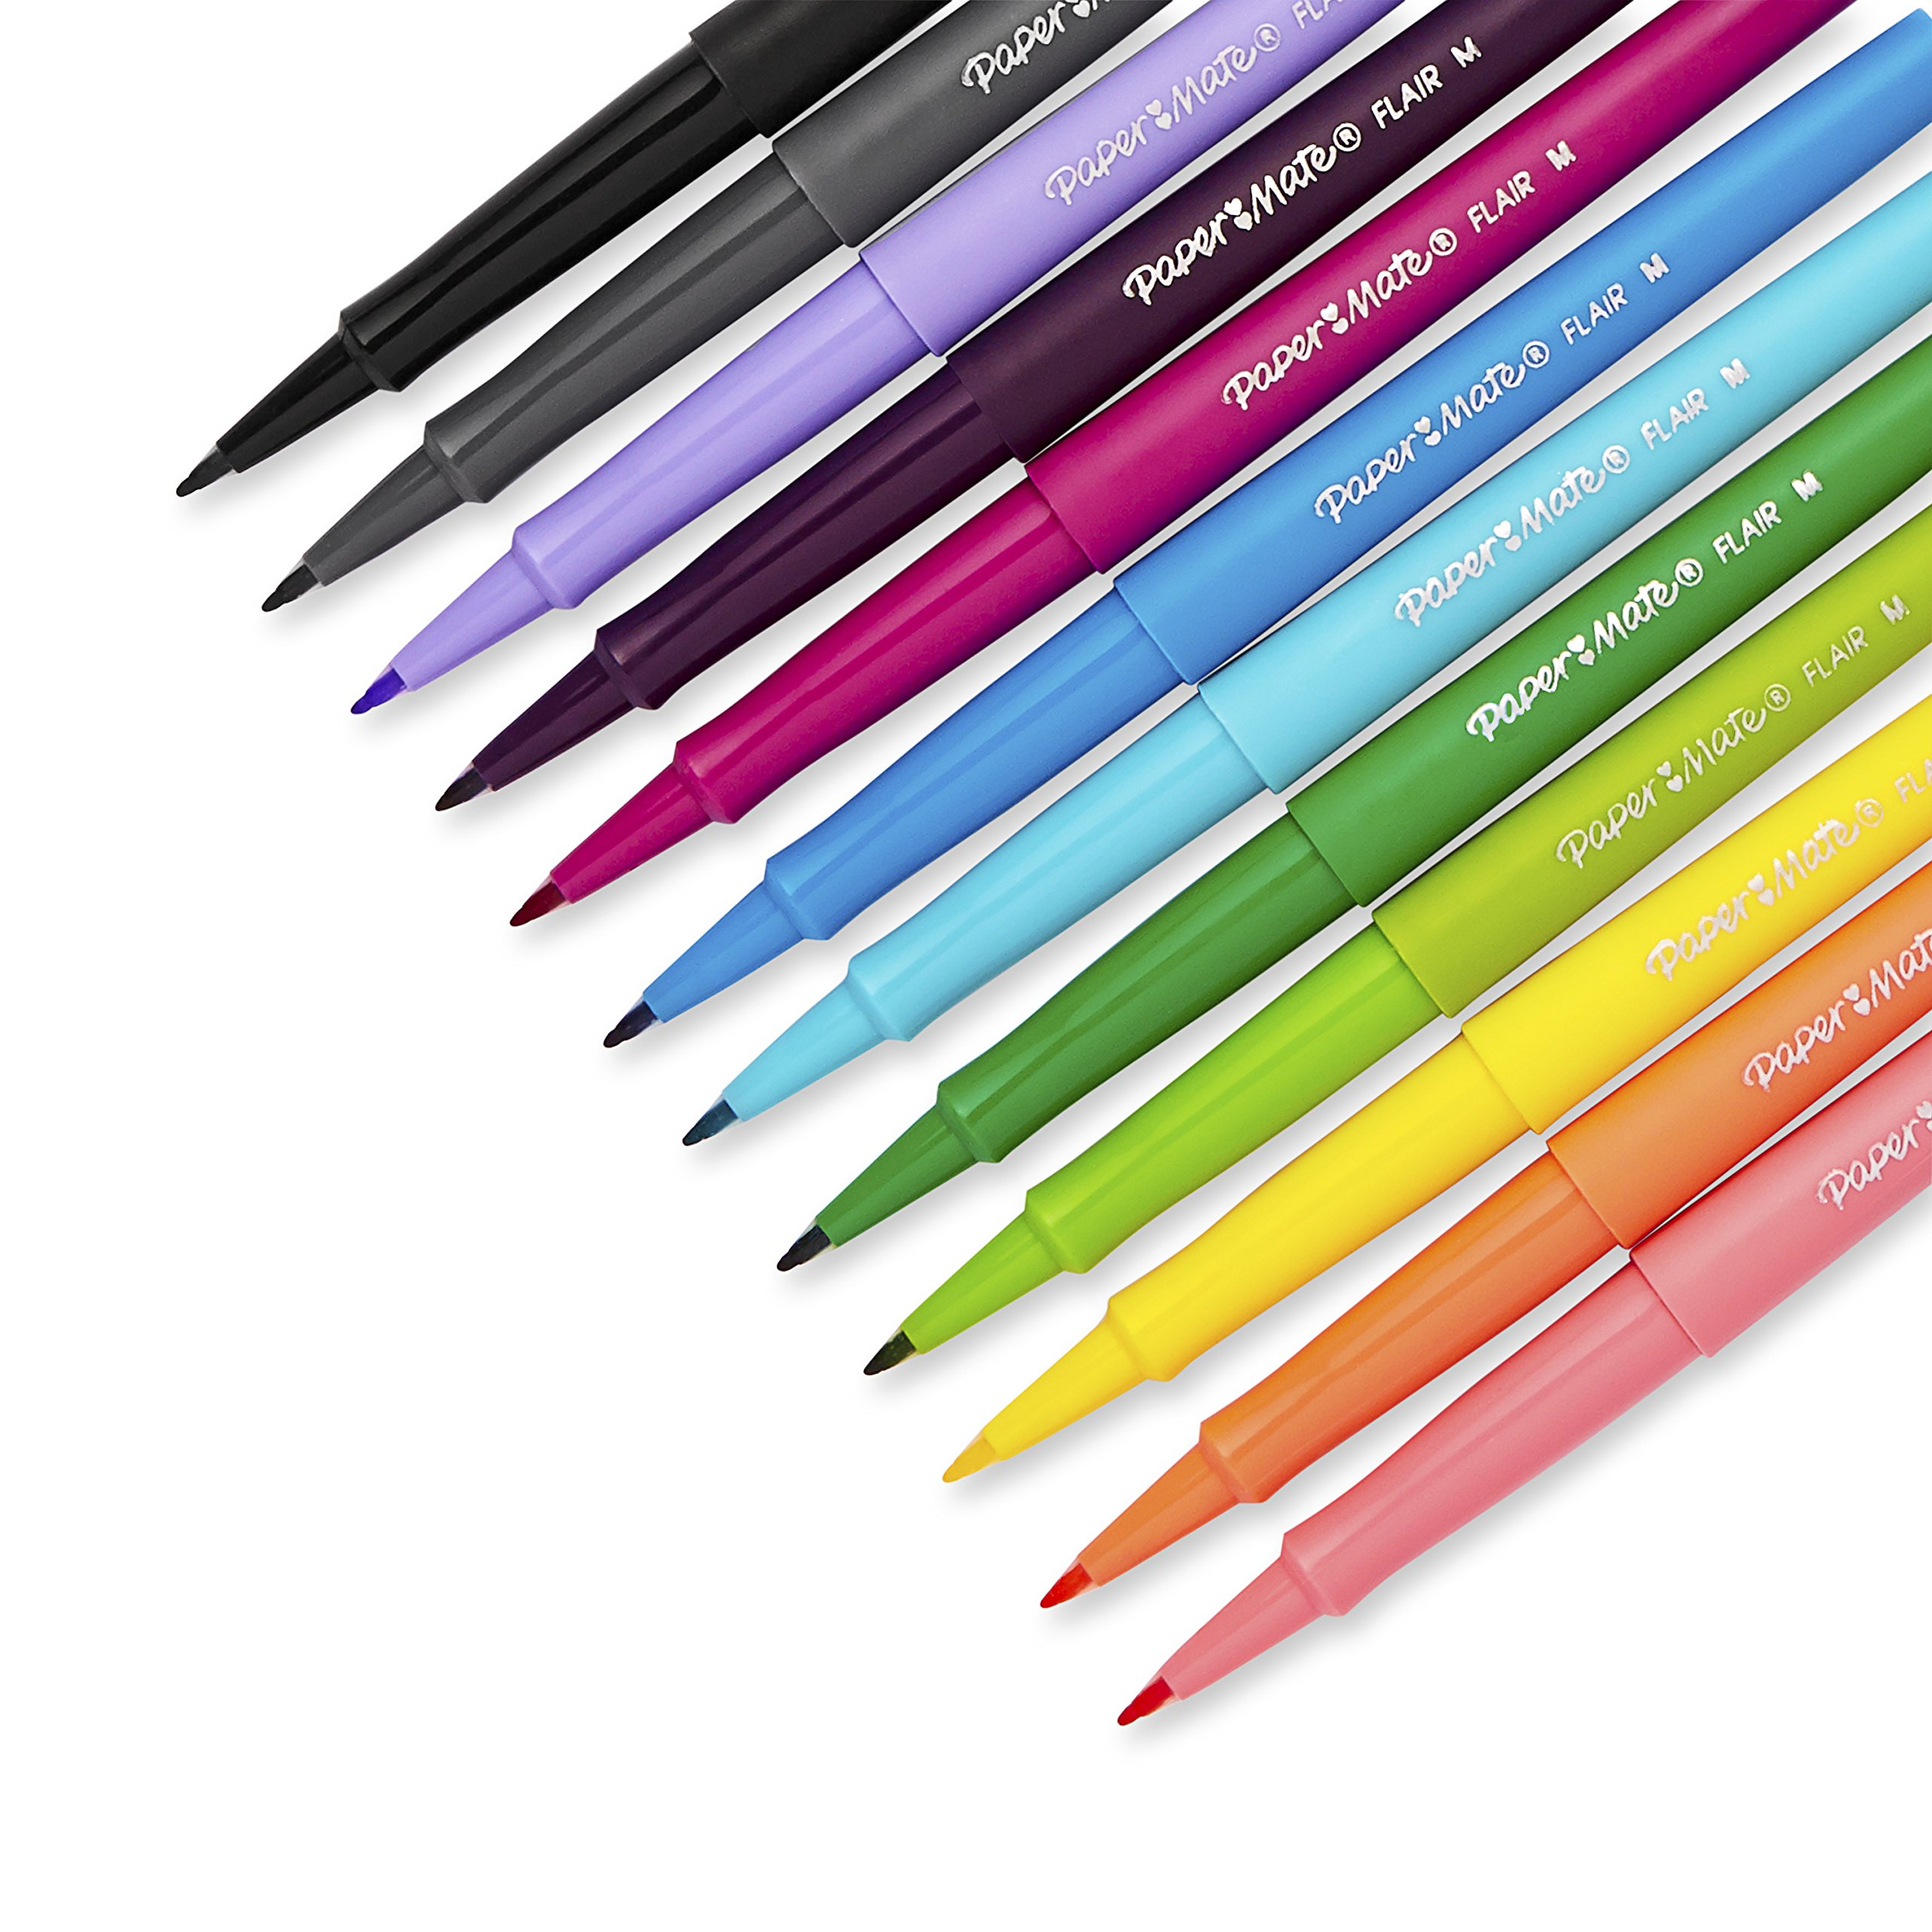 Paper Mate 1928605 Flair Felt Tip Pens, Medium Point (0.7mm), Tropical & Classic Colors, 12 Count by Paper Mate (Image #3)